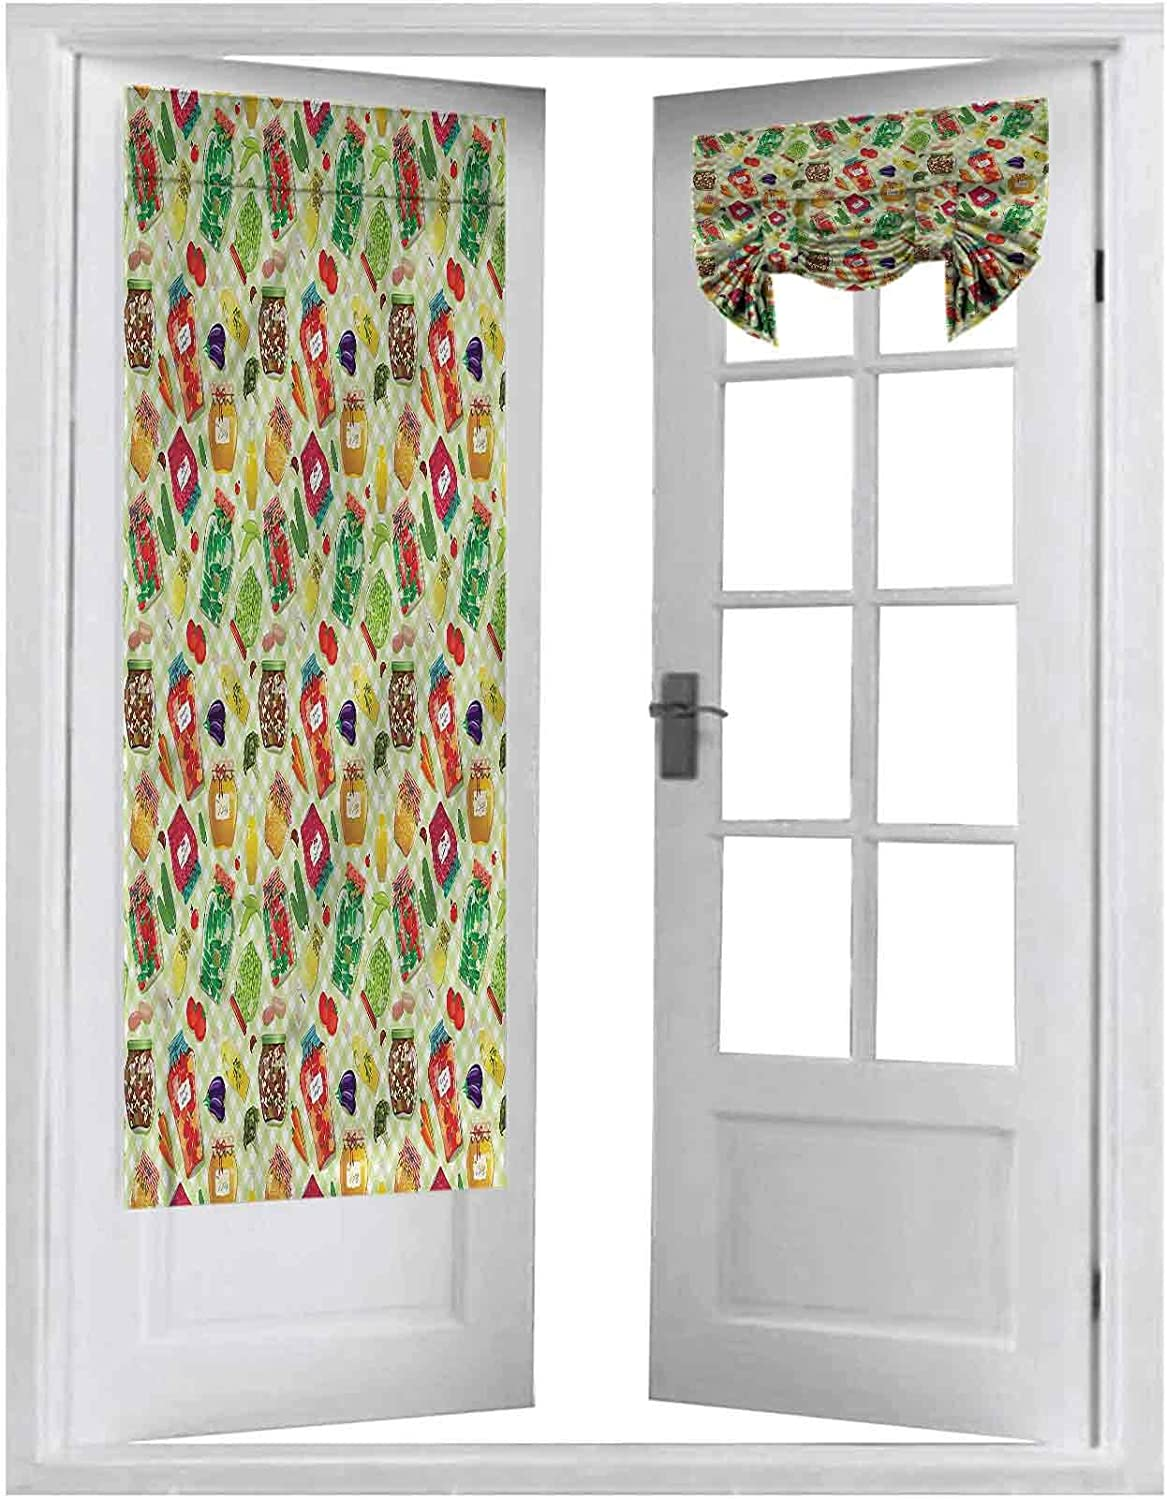 Blackout French Door Window Curtains, Kitchen,Foods Glass Jars on Table, 2 Panels-26